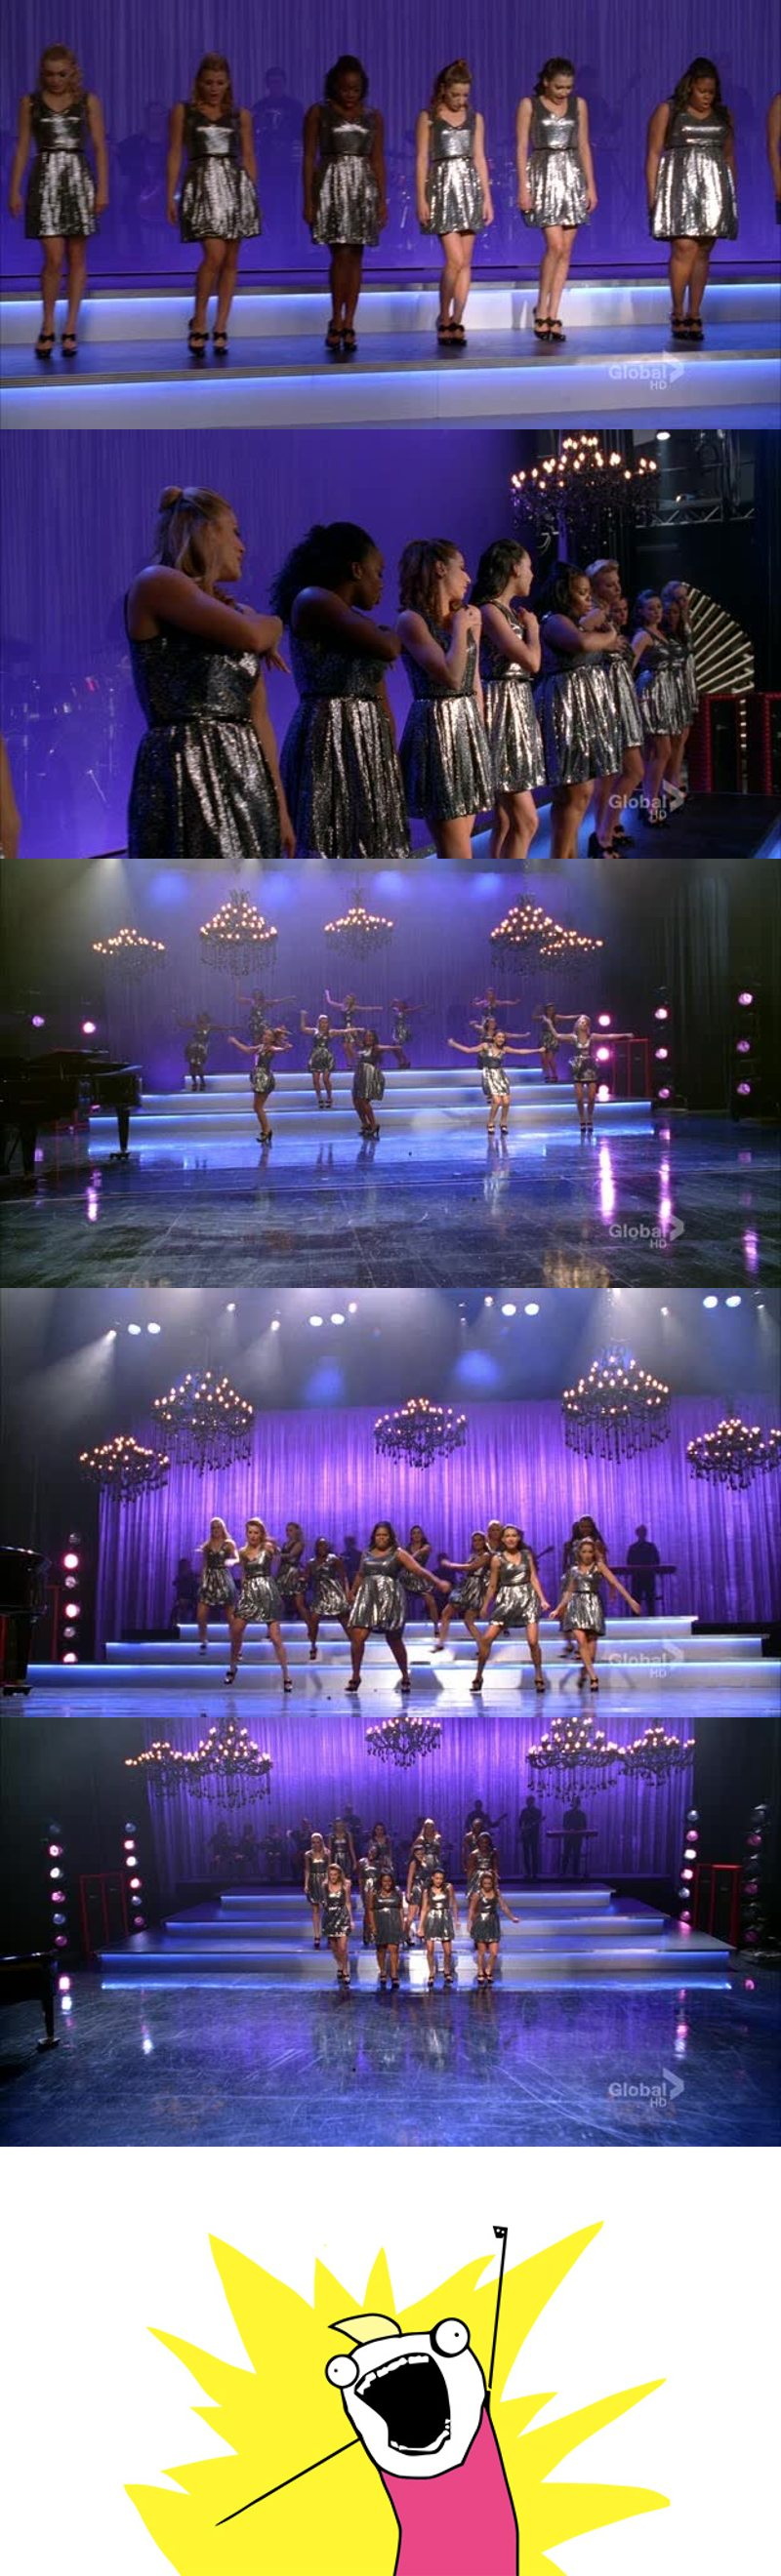 Let's be honest: their performance was better than the New Direction's!